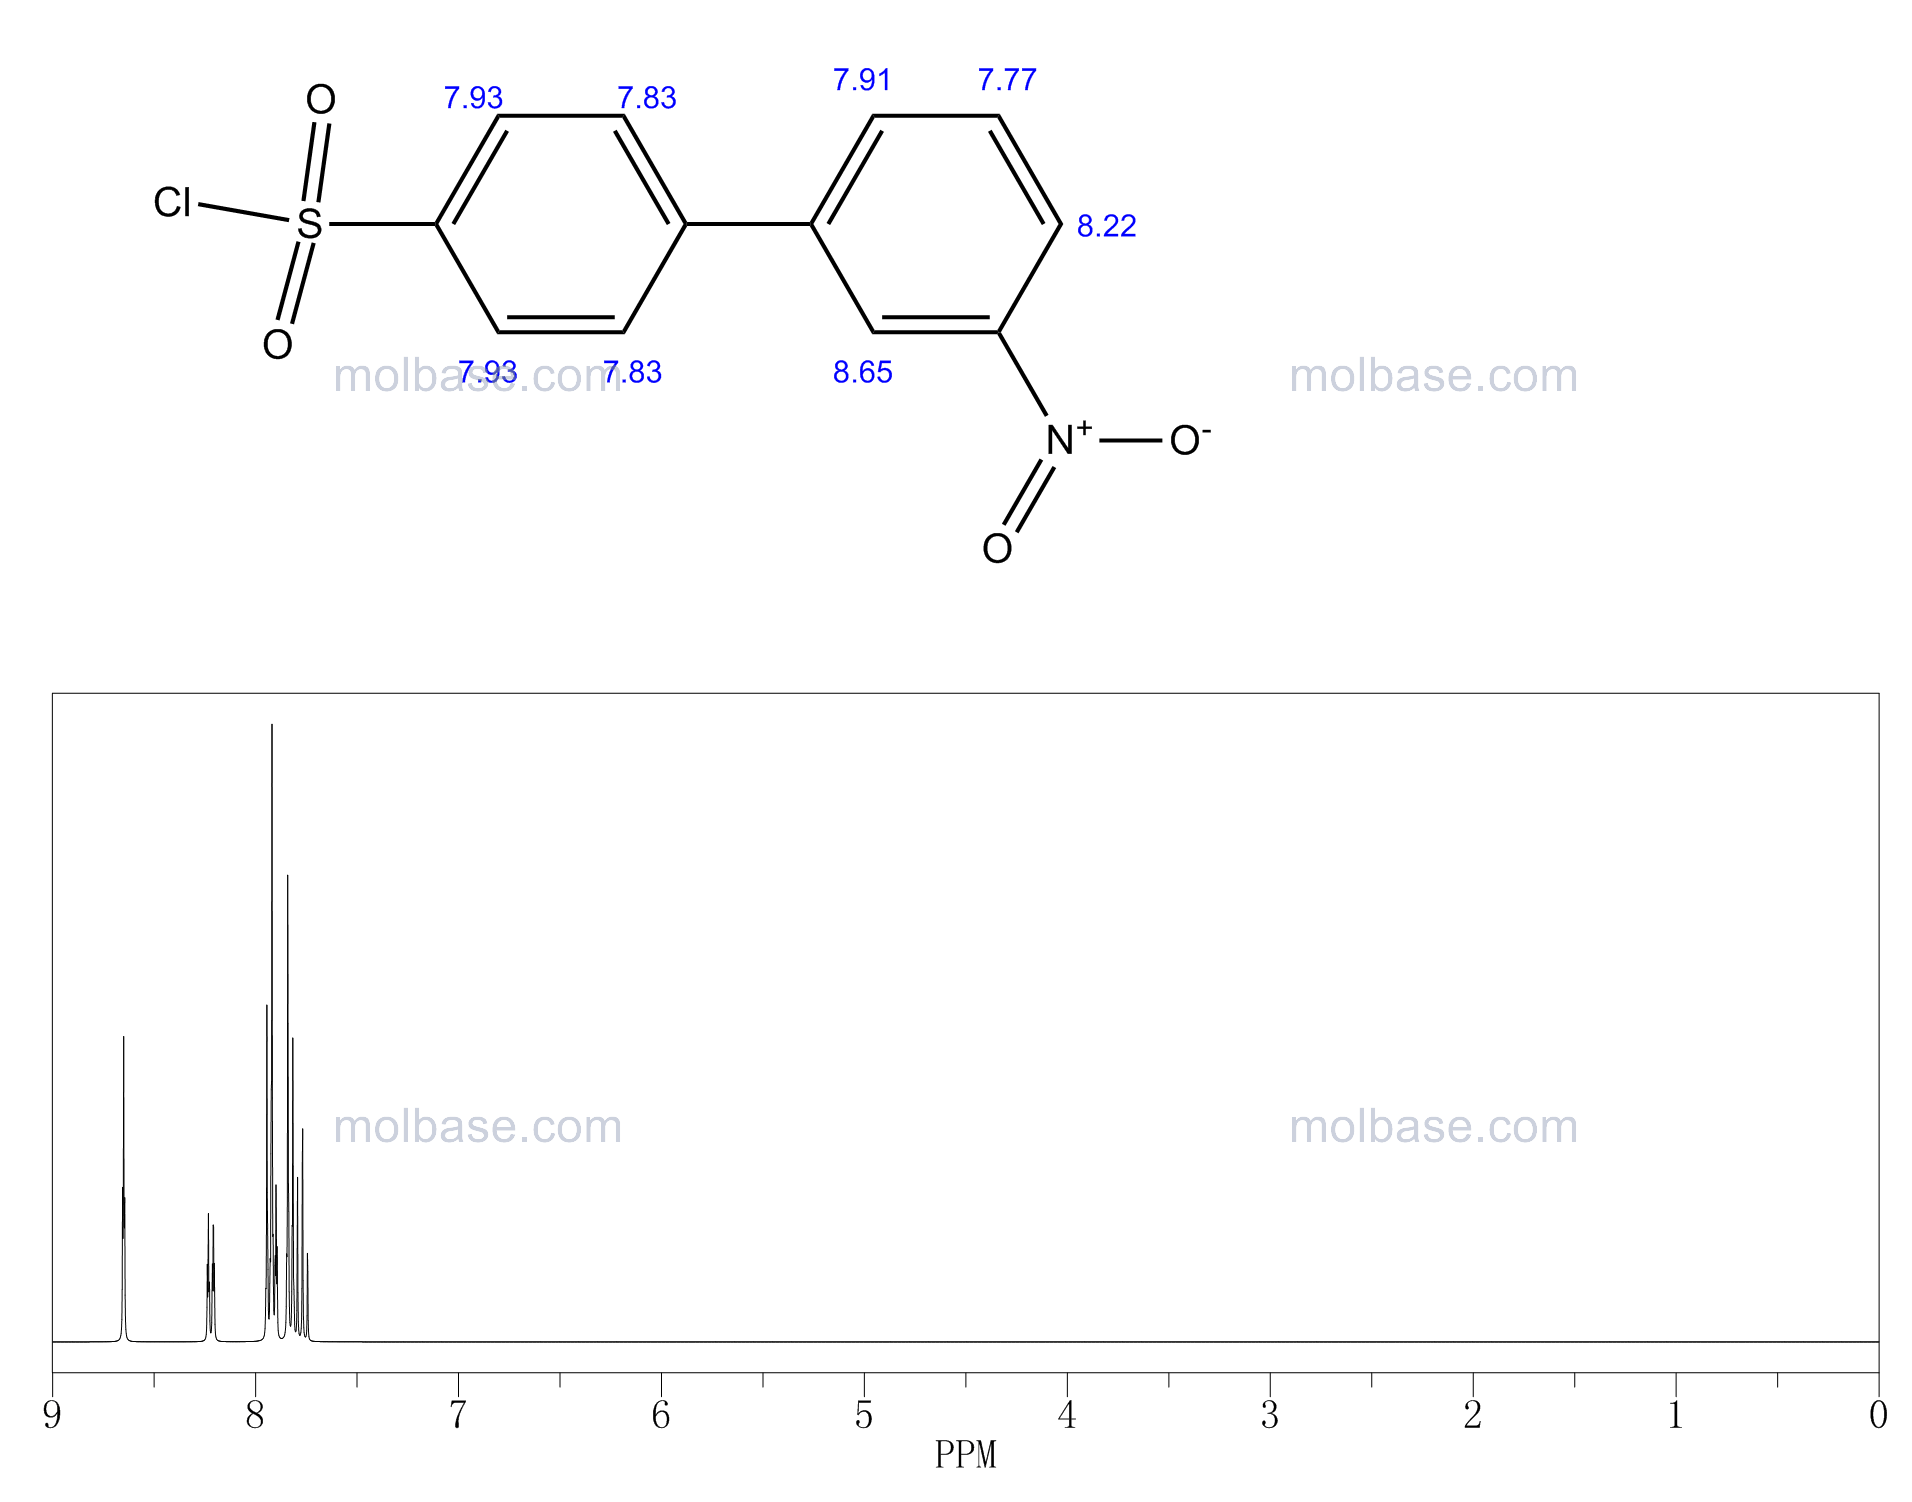 4-(3-nitrophenyl)benzenesulfonyl chloride NMR spectra analysis, Chemical CAS NO. 101366-50-1 NMR spectral analysis, 4-(3-nitrophenyl)benzenesulfonyl chloride C-NMR spectrum